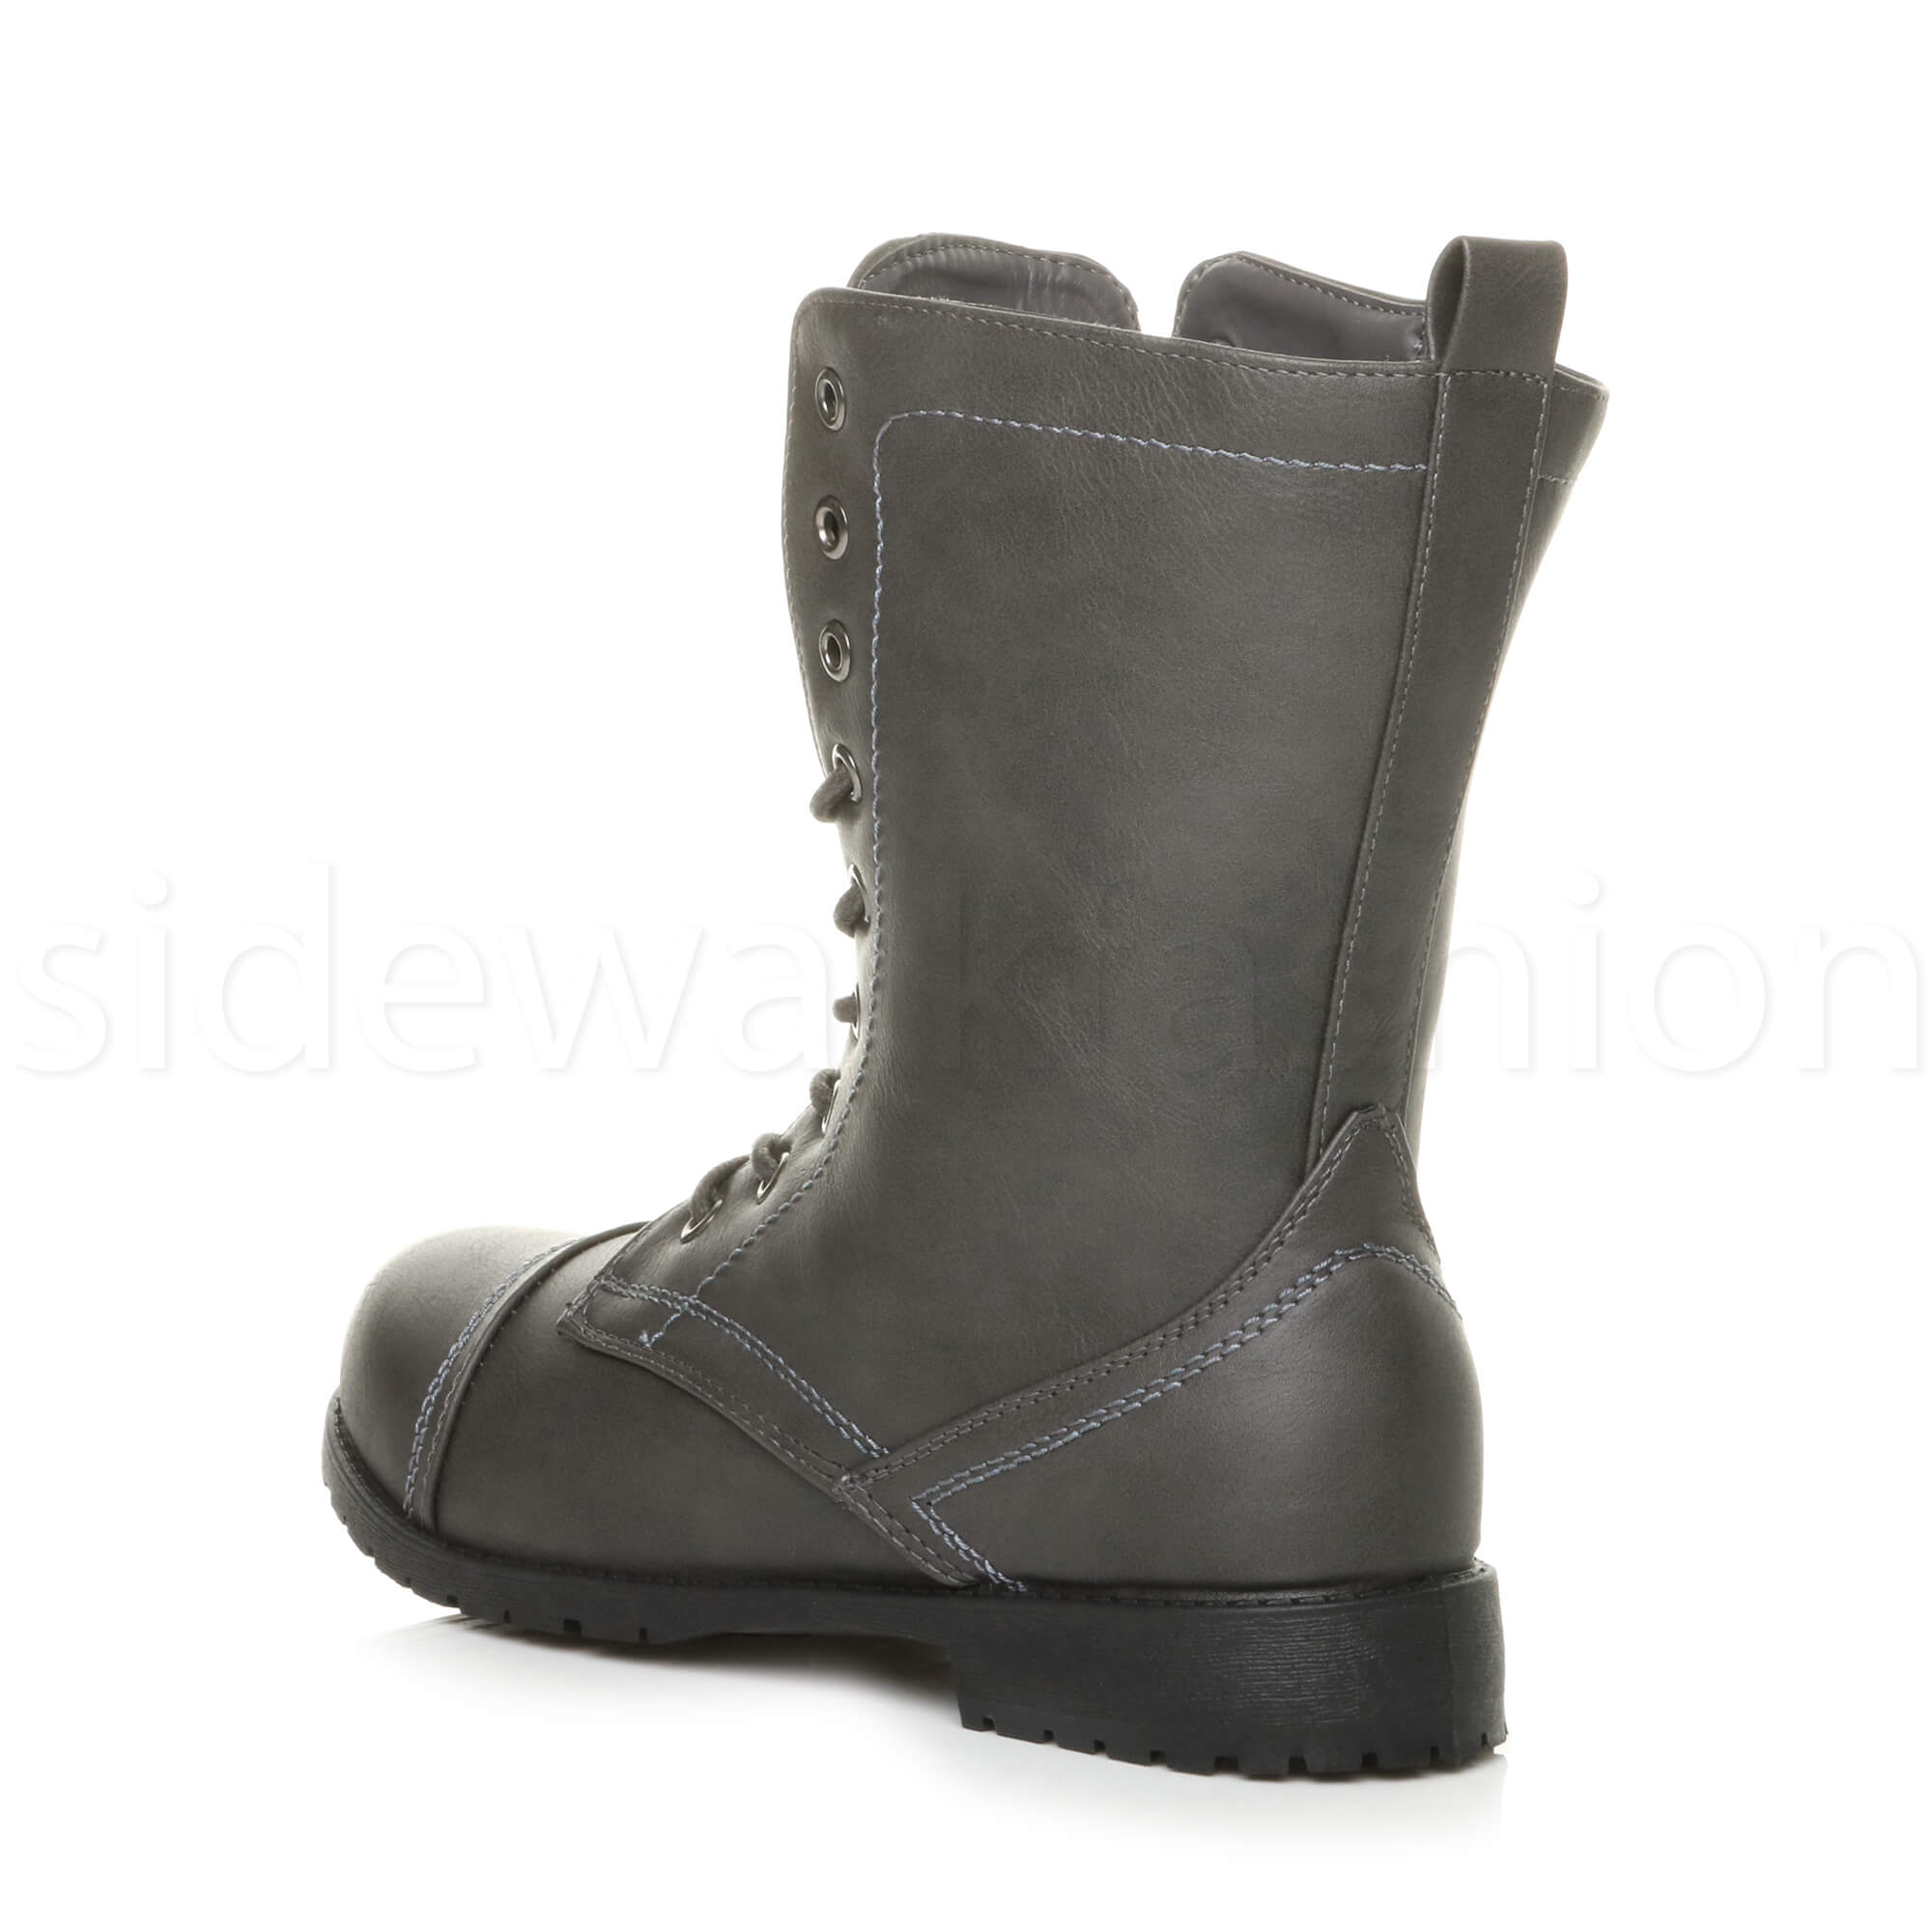 Womens-ladies-low-heel-flat-lace-up-zip-combat-biker-military-ankle-boots-size thumbnail 85